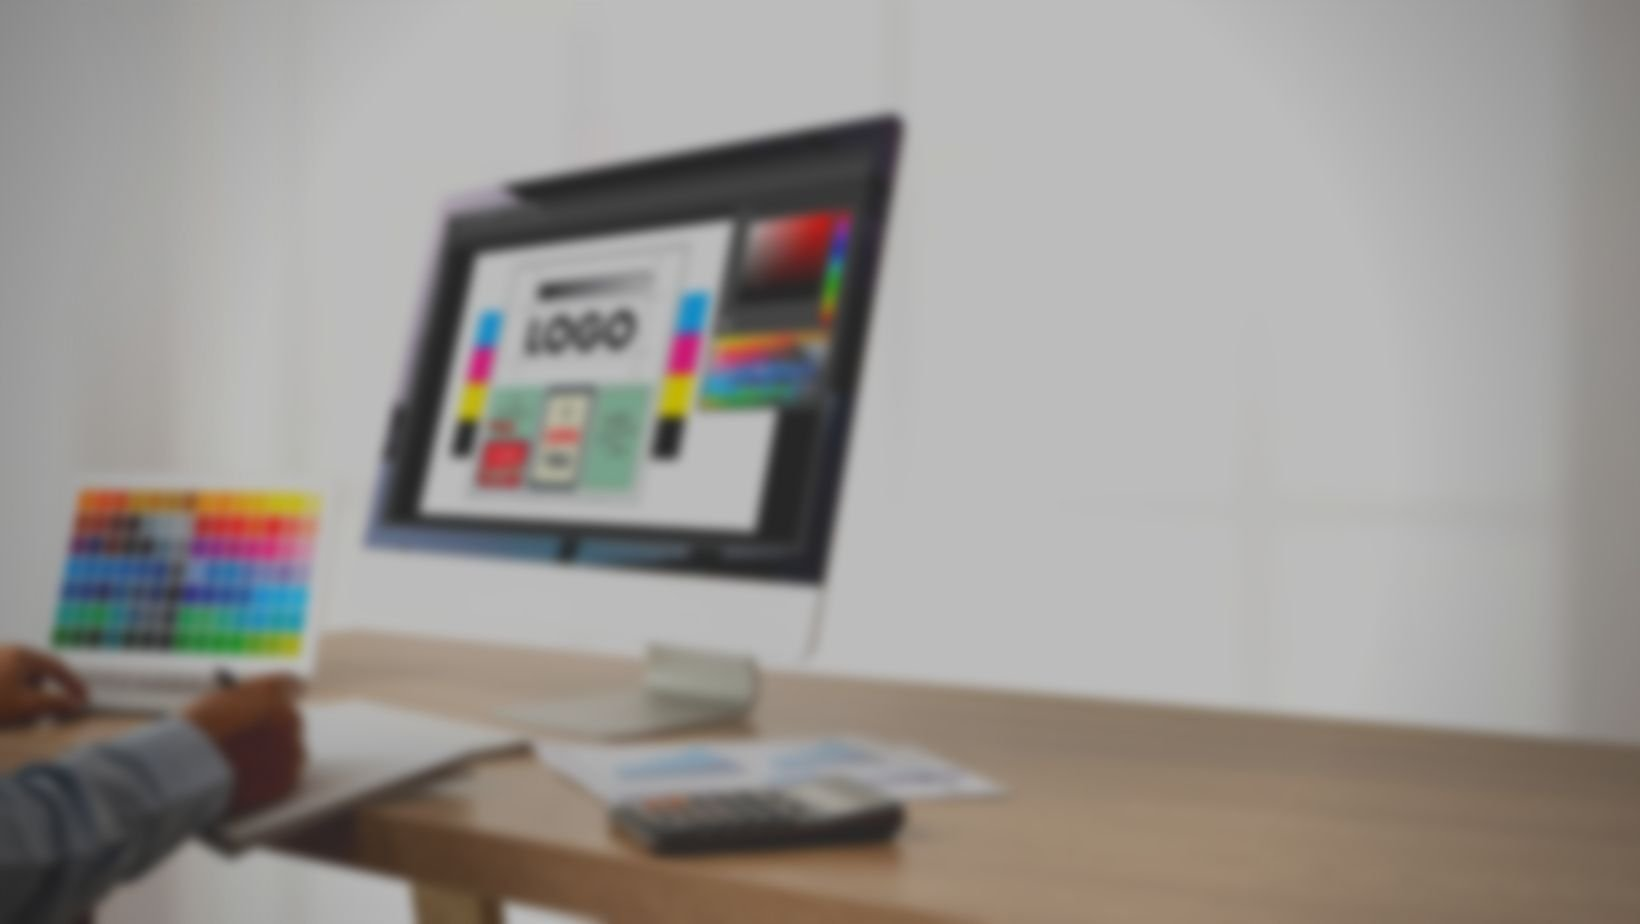 Make sure your website has a cohesive look and feel